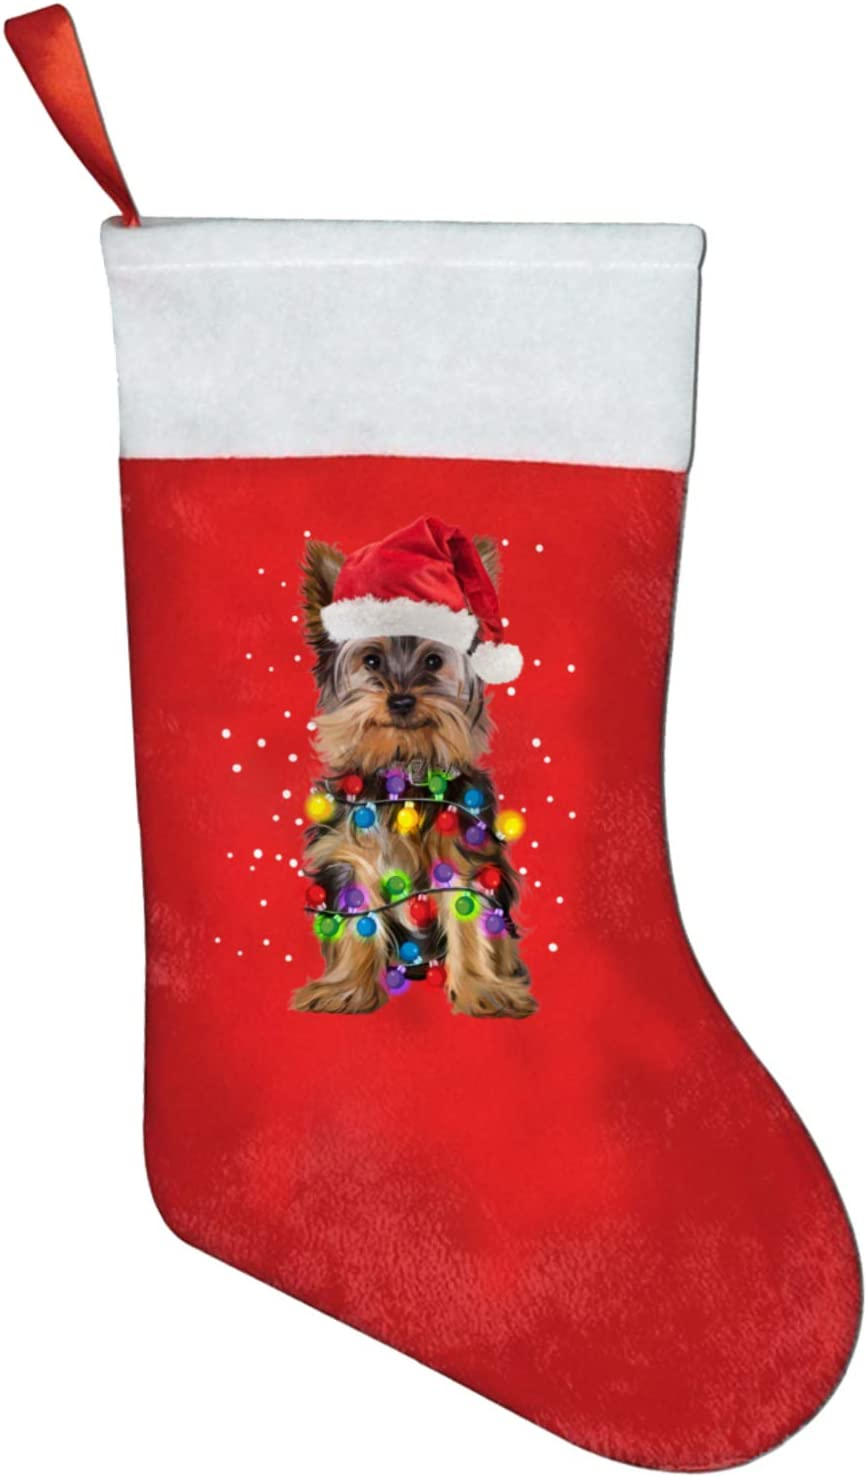 Negi Christmas Stocking for Holiday Fireplace Home Decoration Chriatmas Yorkies Light